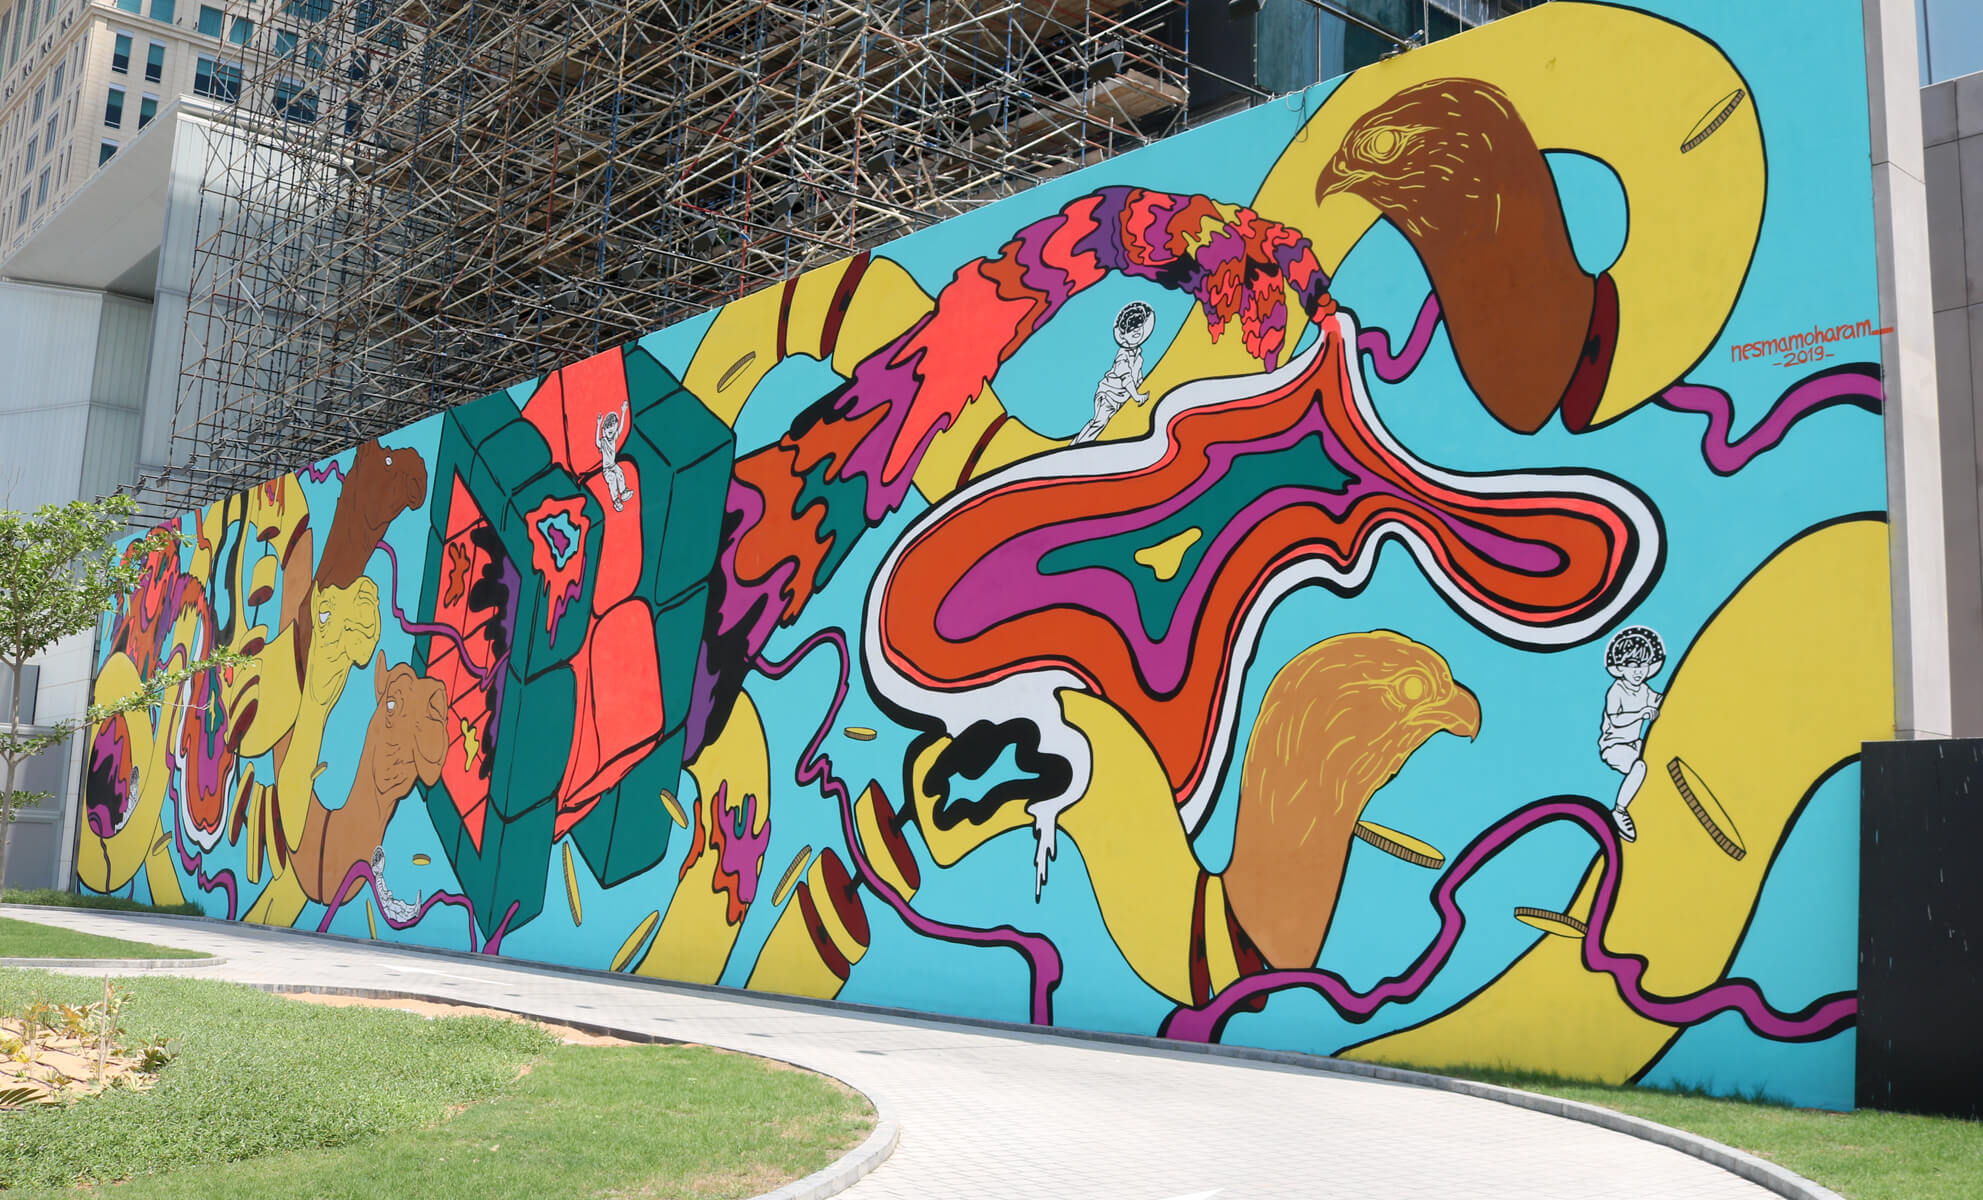 ARTFIVE0 MURAL REVEAL   Metamorphosis of Dubai